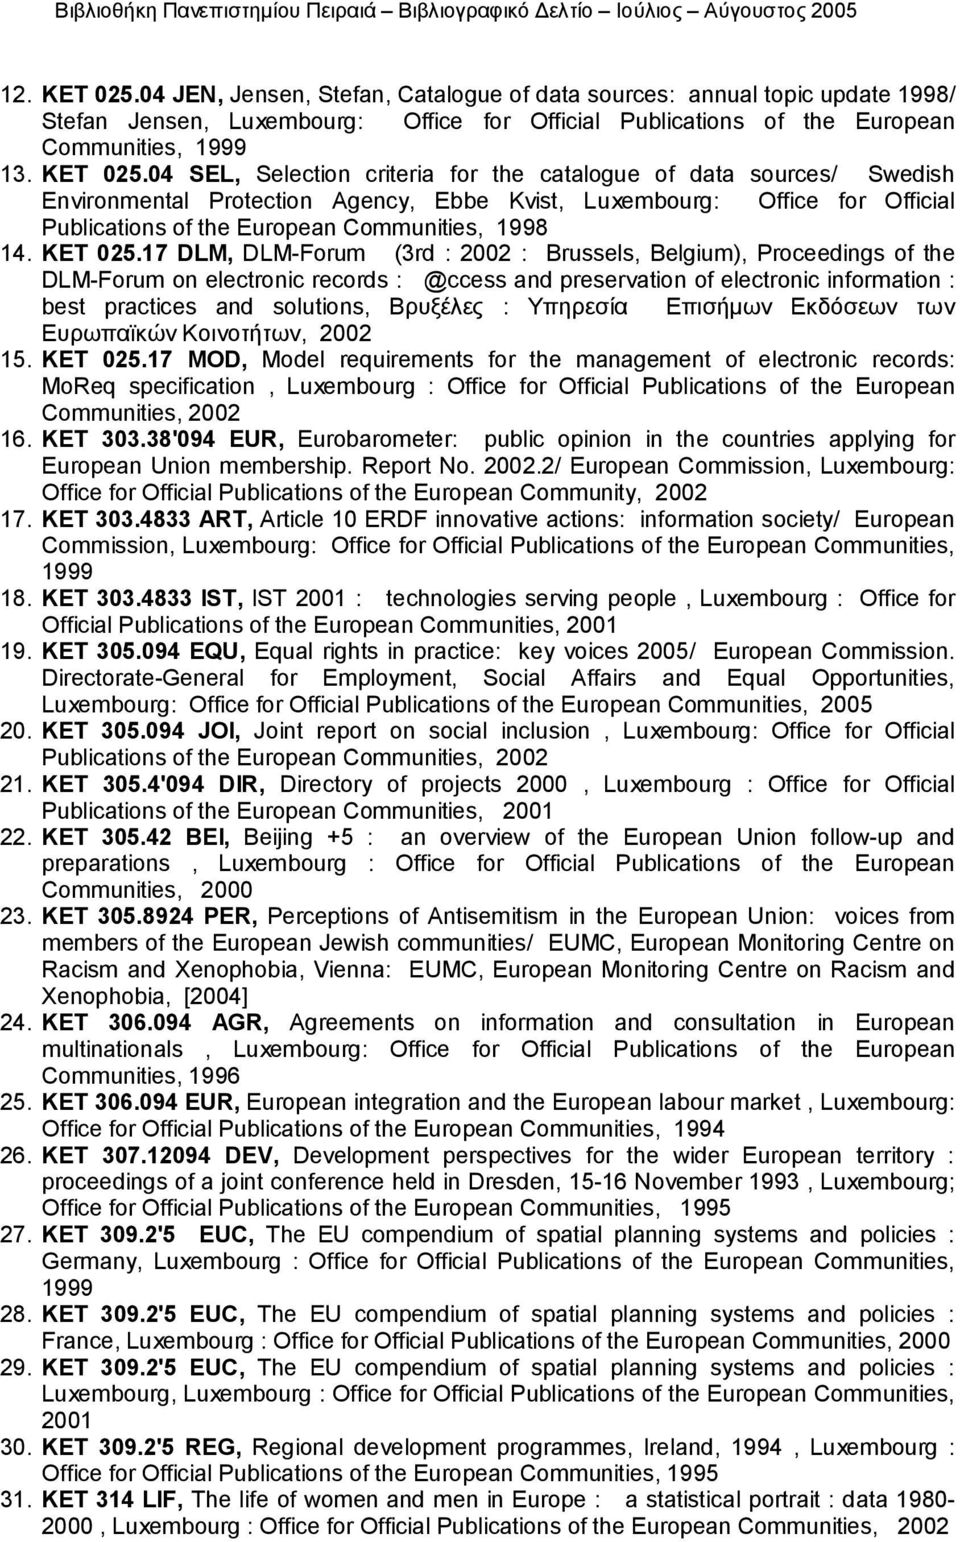 04 SEL, Selection criteria for the catalogue of data sources/ Swedish Environmental Protection Agency, Ebbe Kvist, Luxembourg: Office for Official Publications of the European Communities, 1998 14.